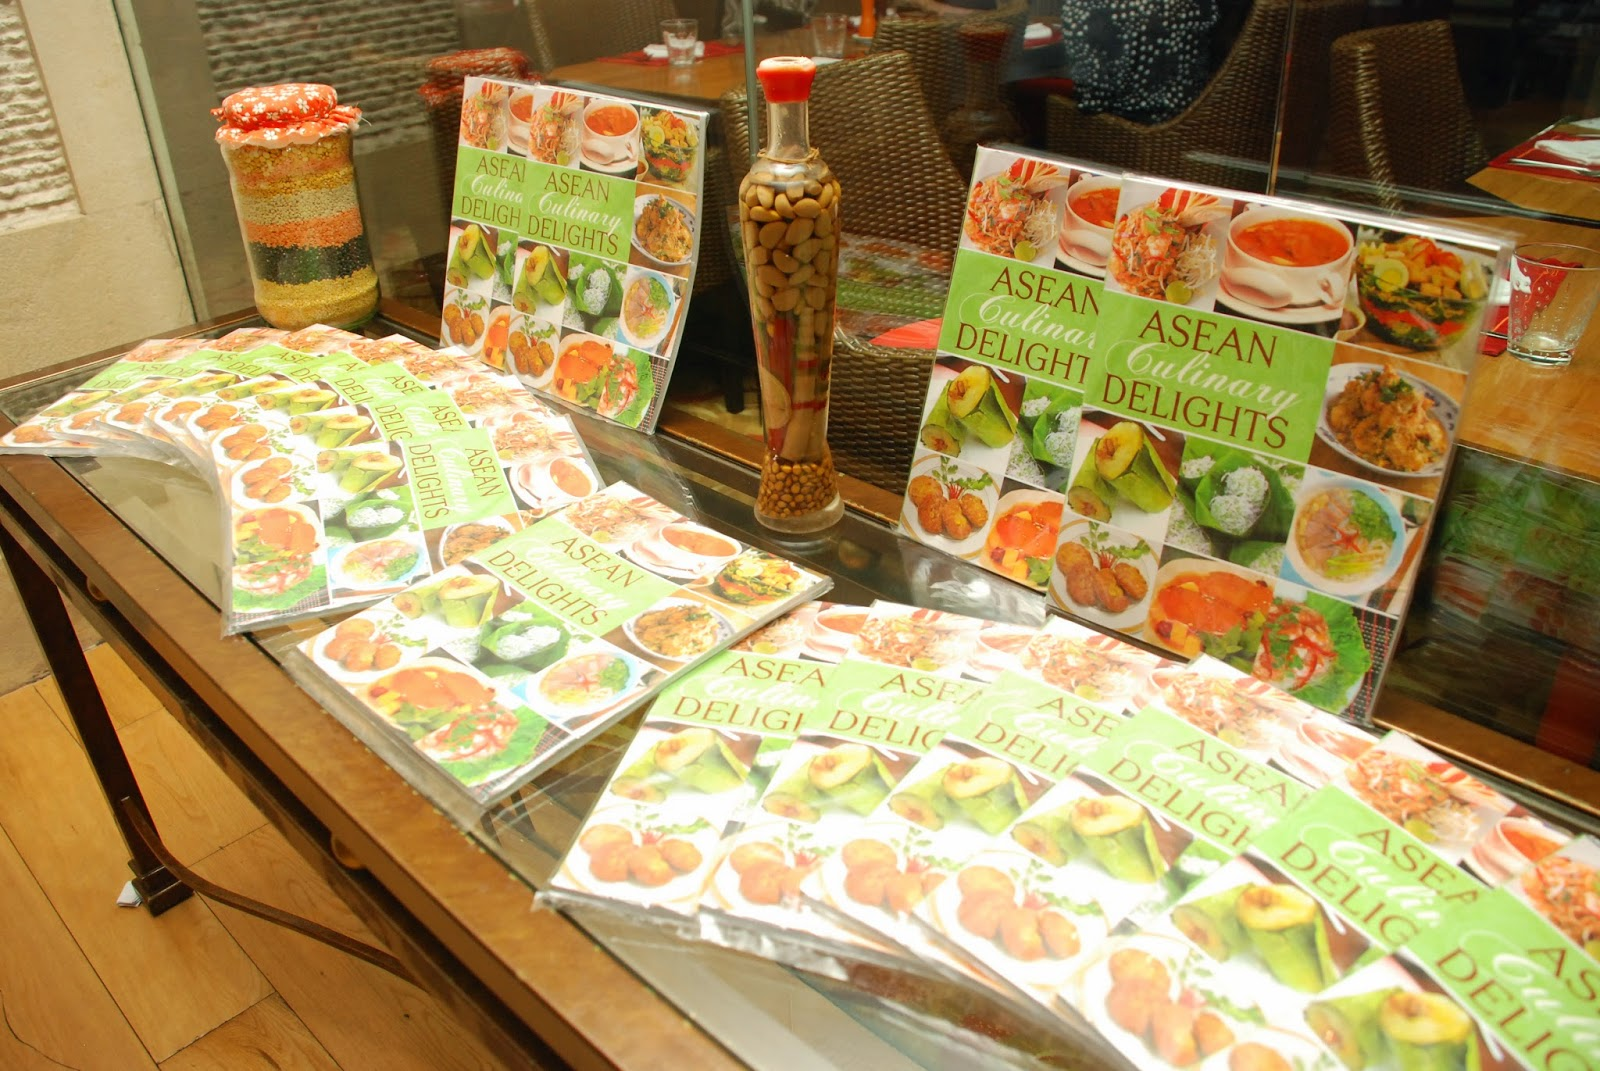 ASEAN Culinary Delights cookbook